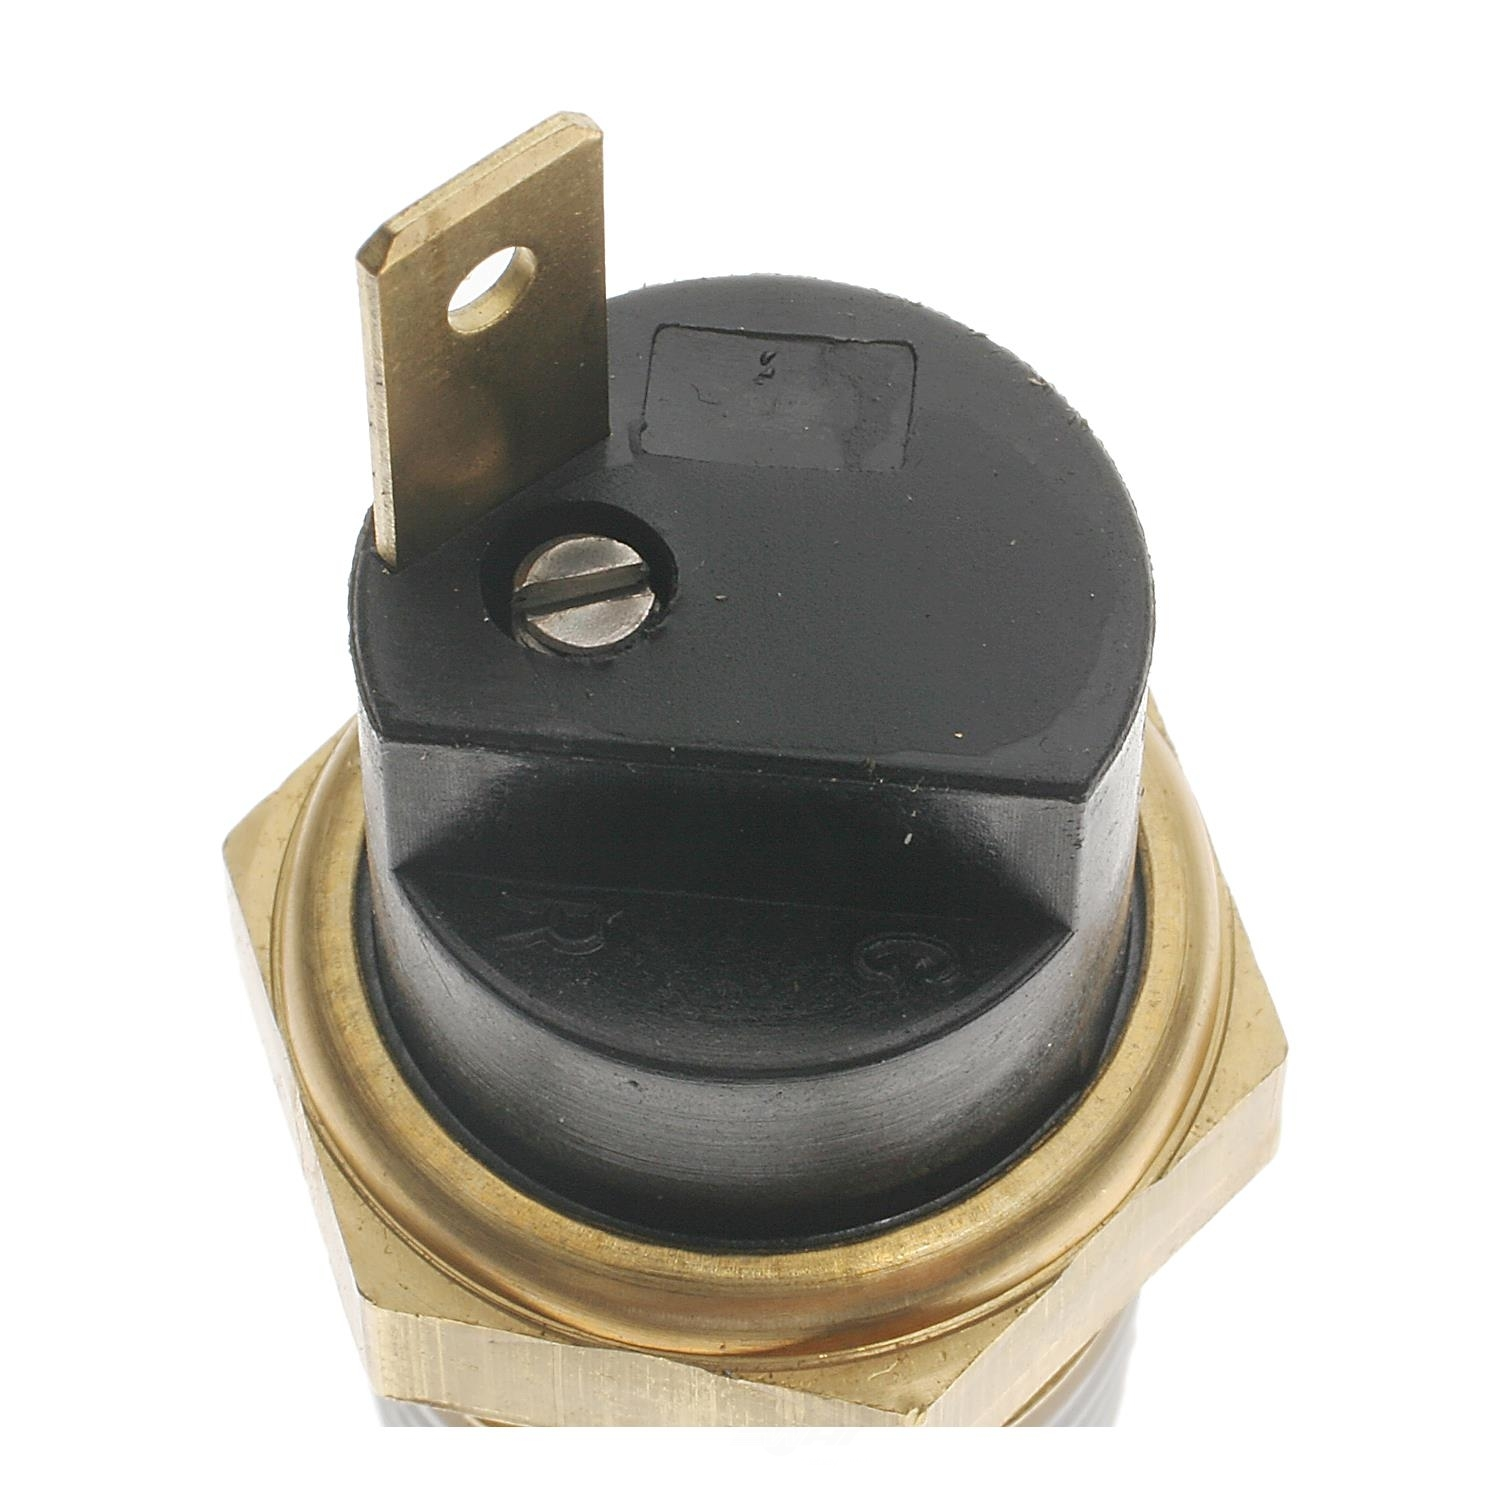 STANDARD T-SERIES - Engine Coolant Temperature Sender - STT TS43T